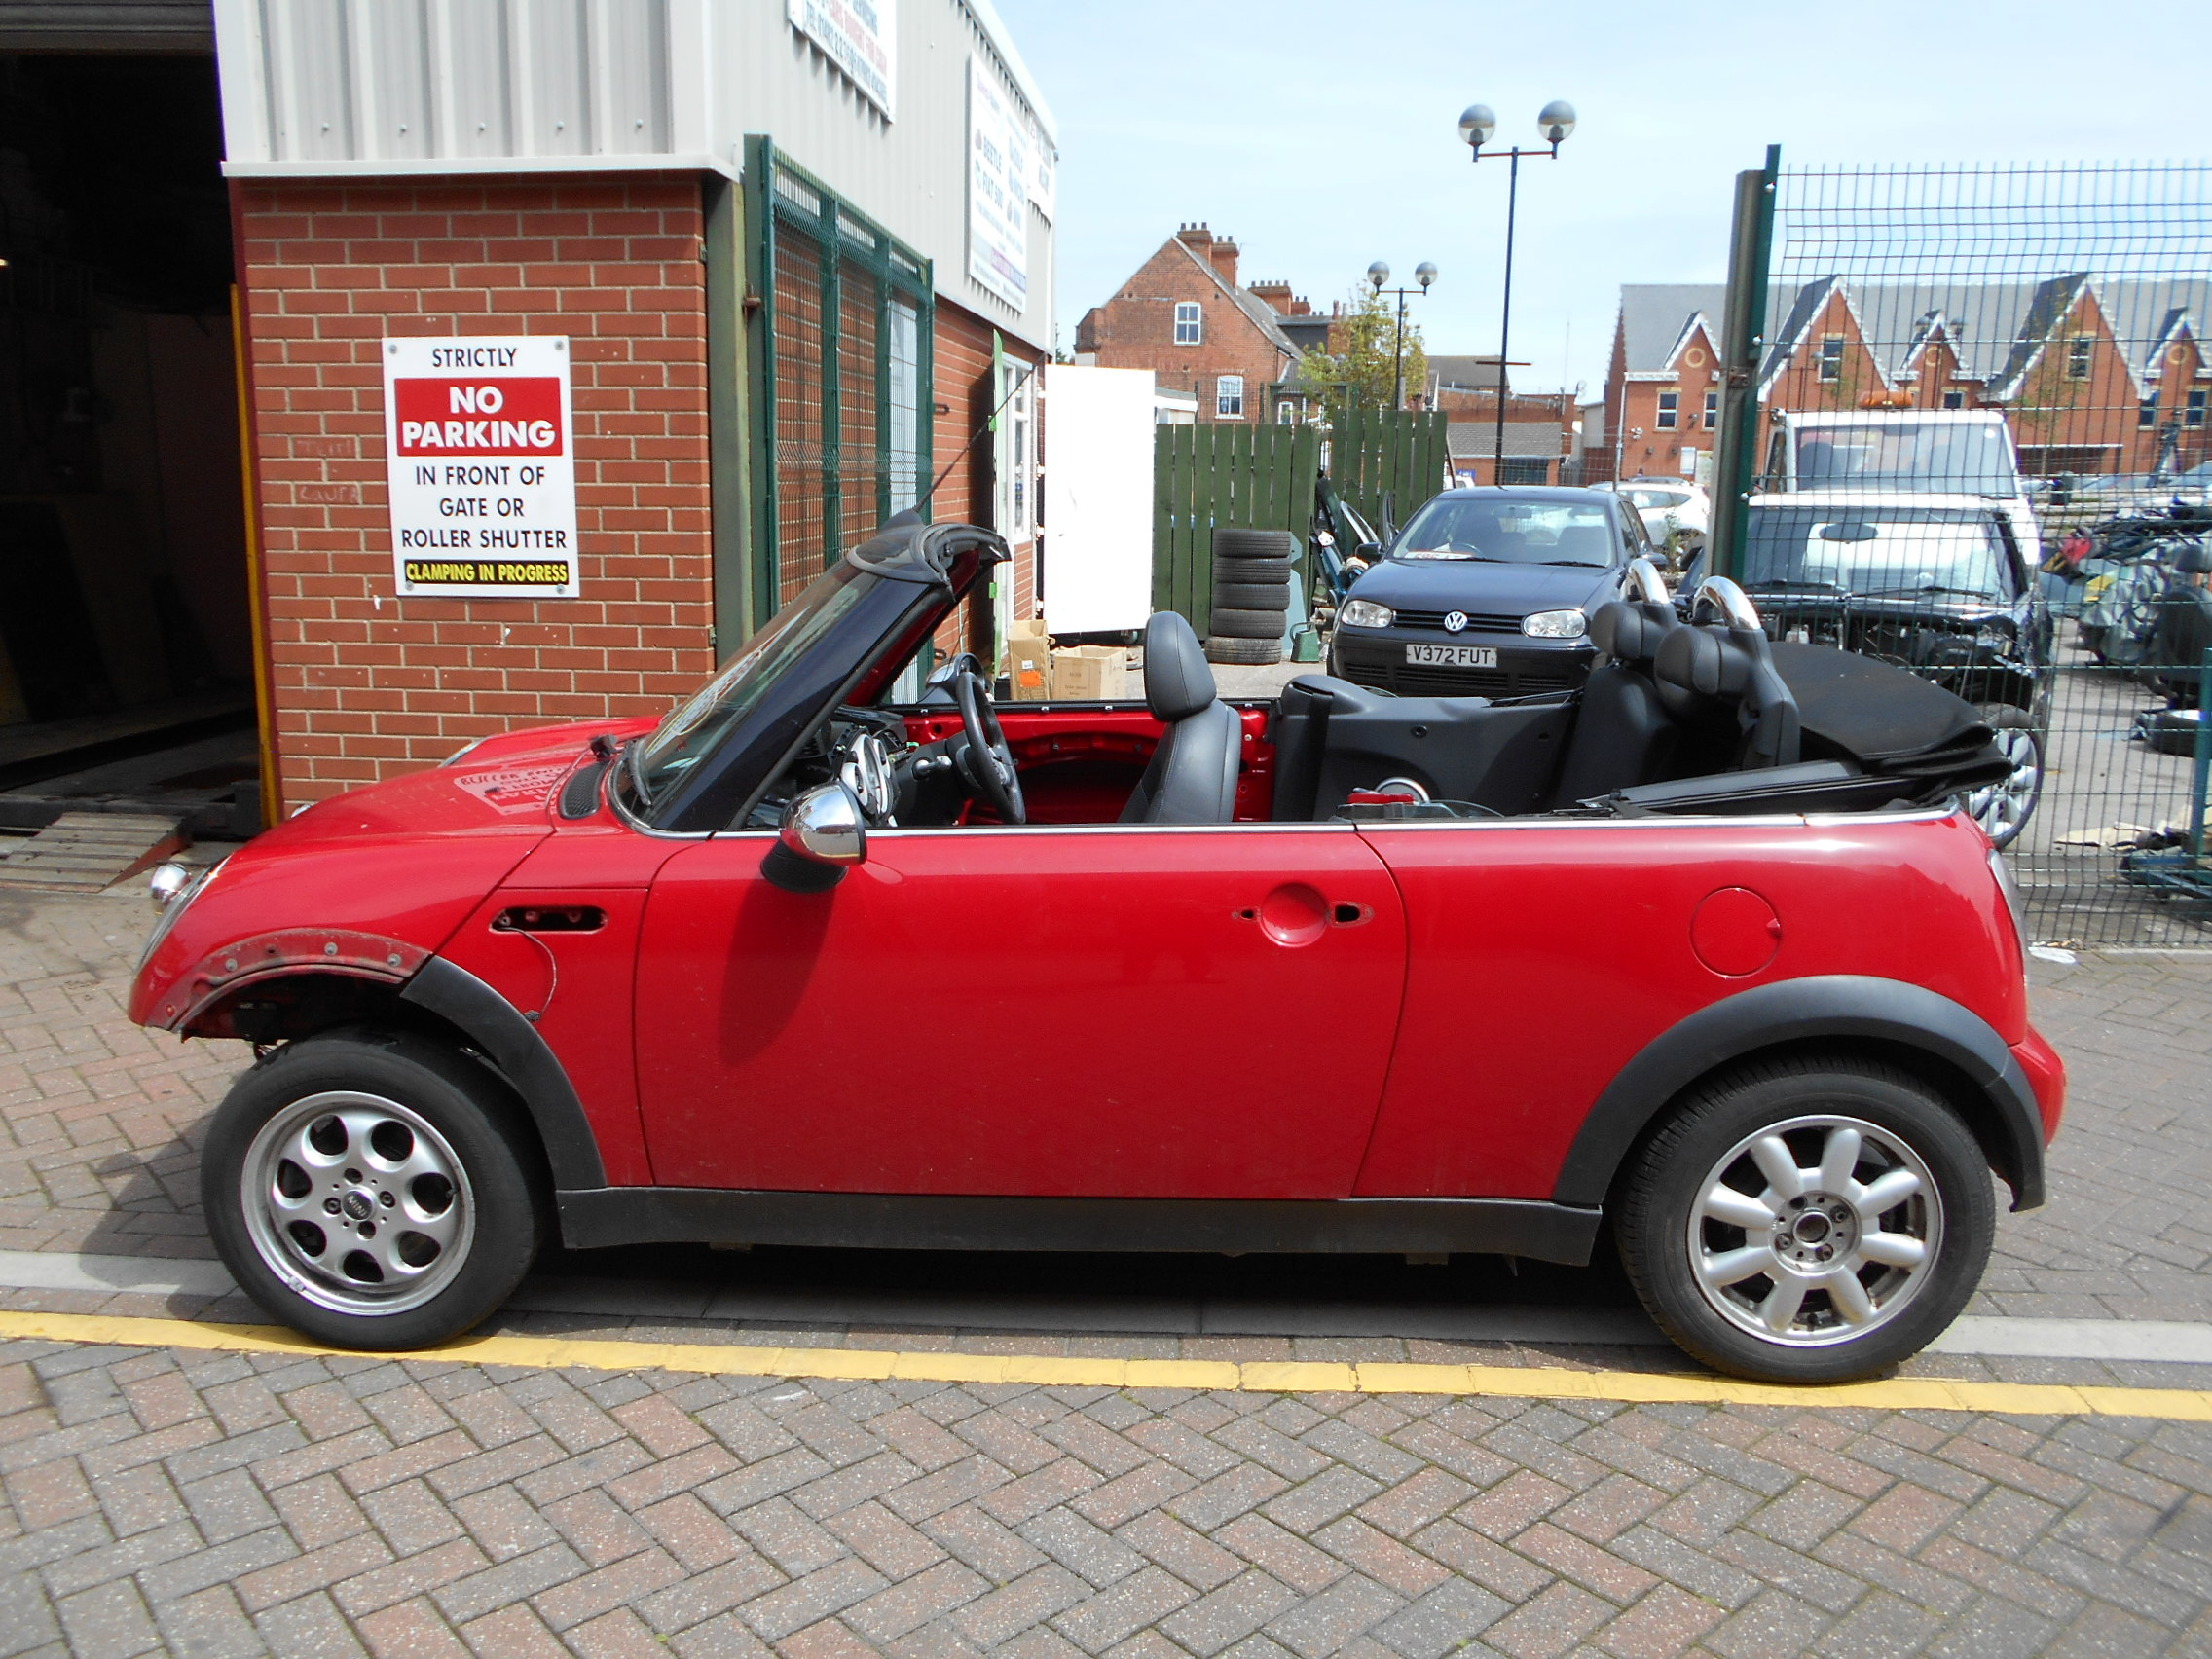 04 Chilli Red 1.6 BMW Mini Convertible - 3